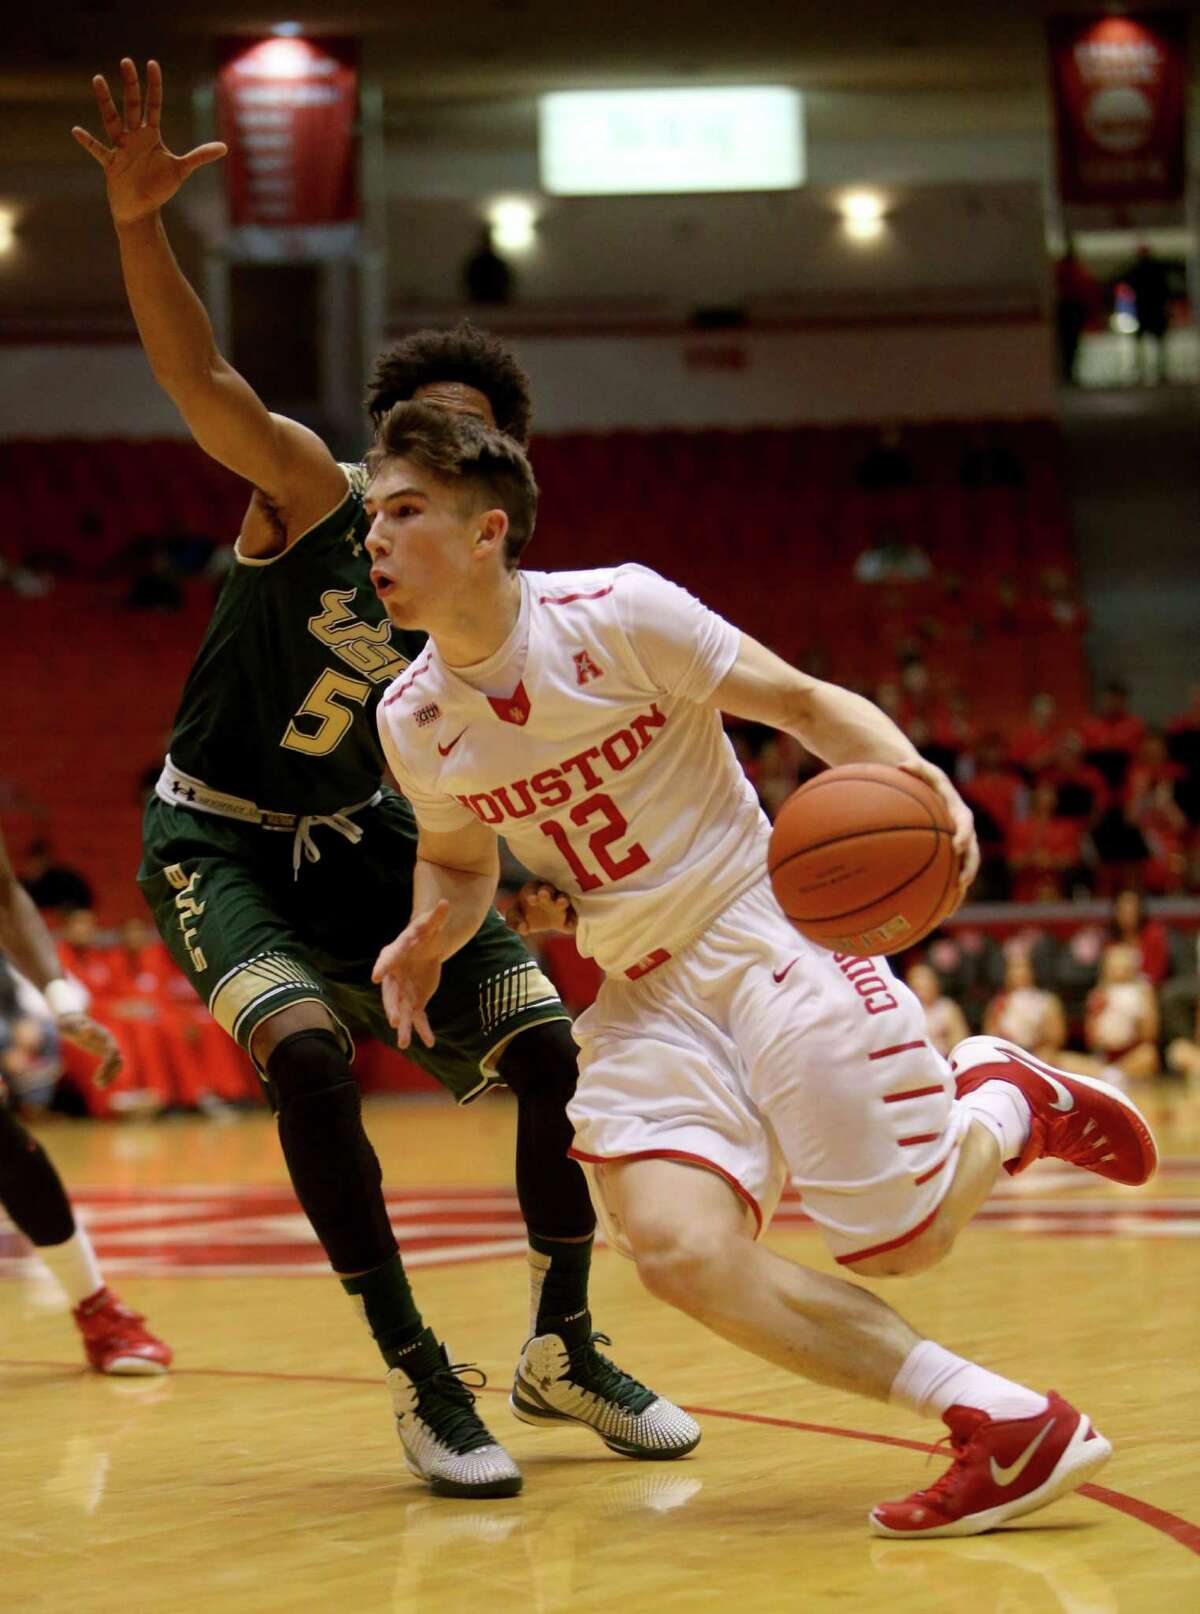 Houston Cougars guard Wes VanBeck (12) drives to the basket guarded by South Florida Bulls guard Nehemias Morillo (5) during the second half at Hofheinz Pavilion on the campus of the University of Houston Saturday, Jan. 23, 2016, in Houston, Texas. Houston lost 62-71.